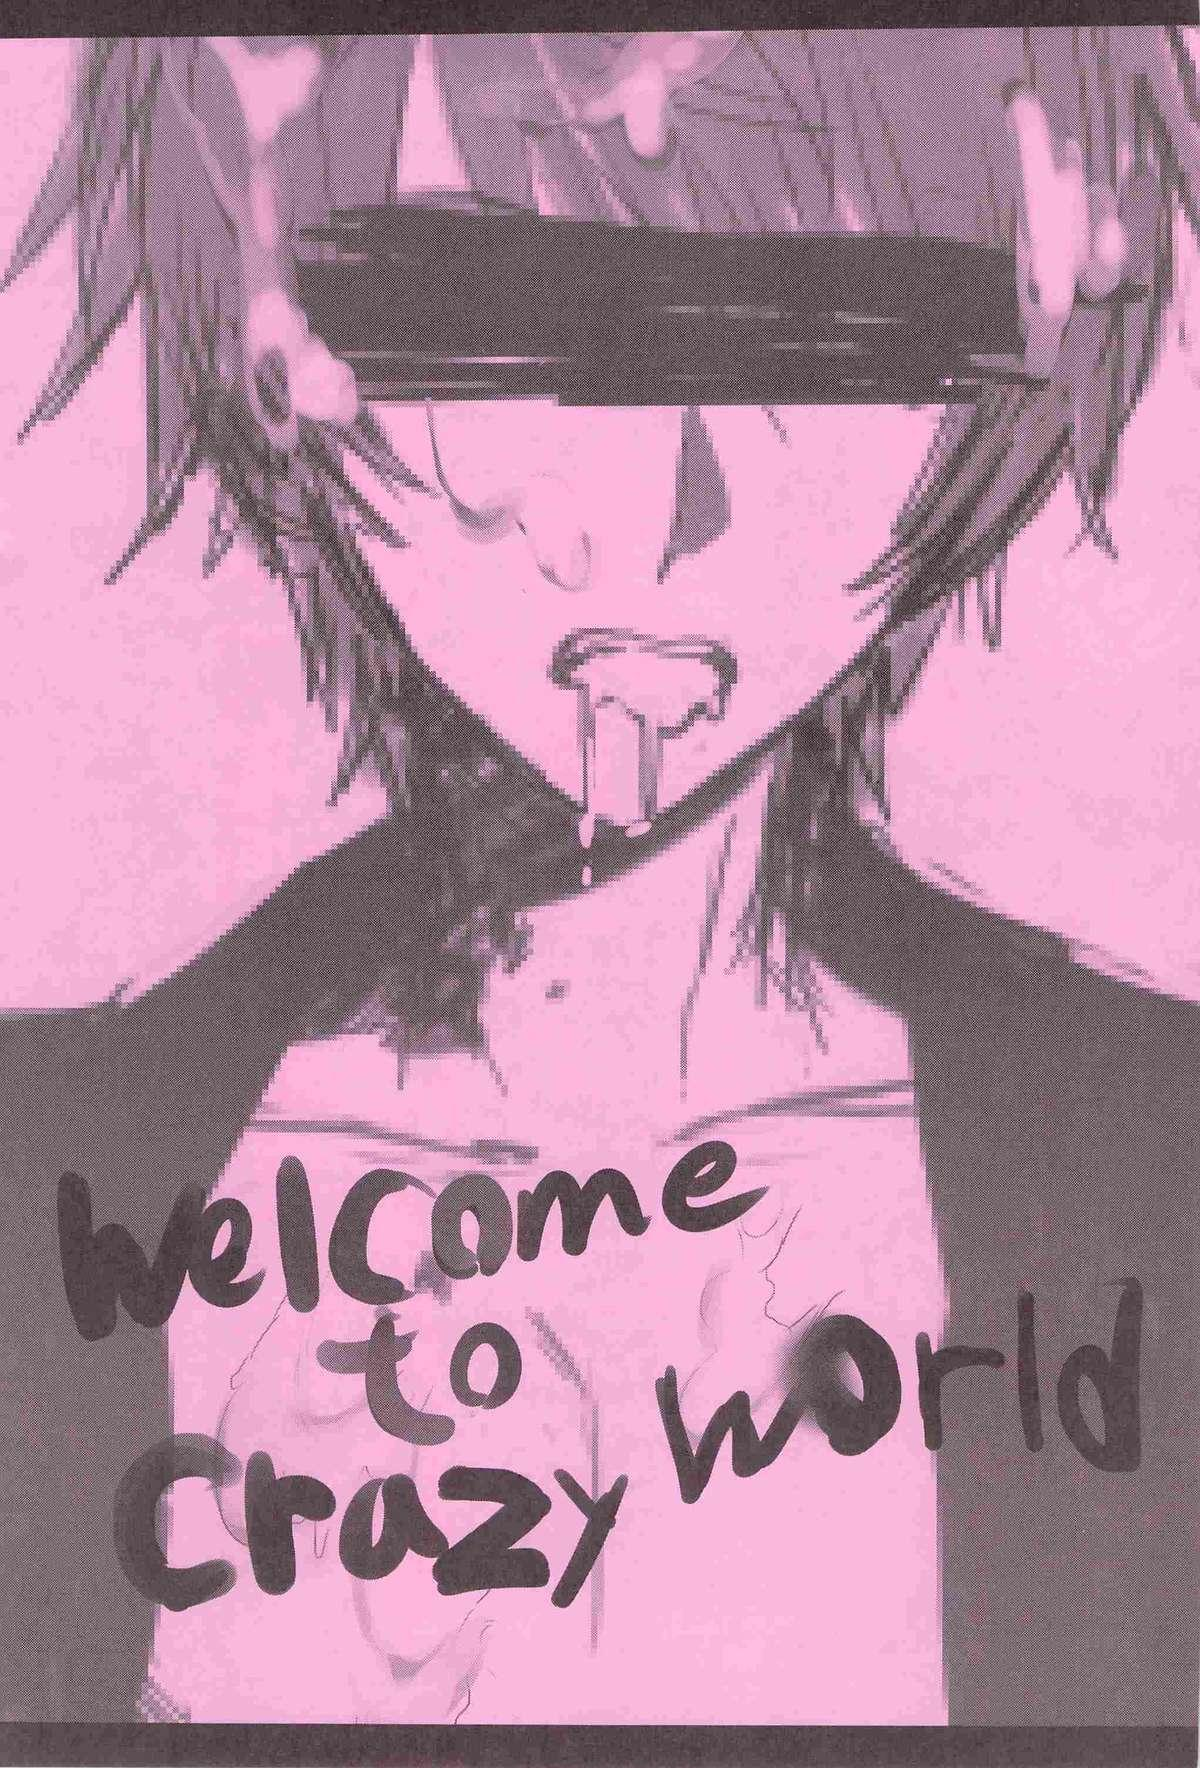 WELCOME TO CRAZY WORLD 1